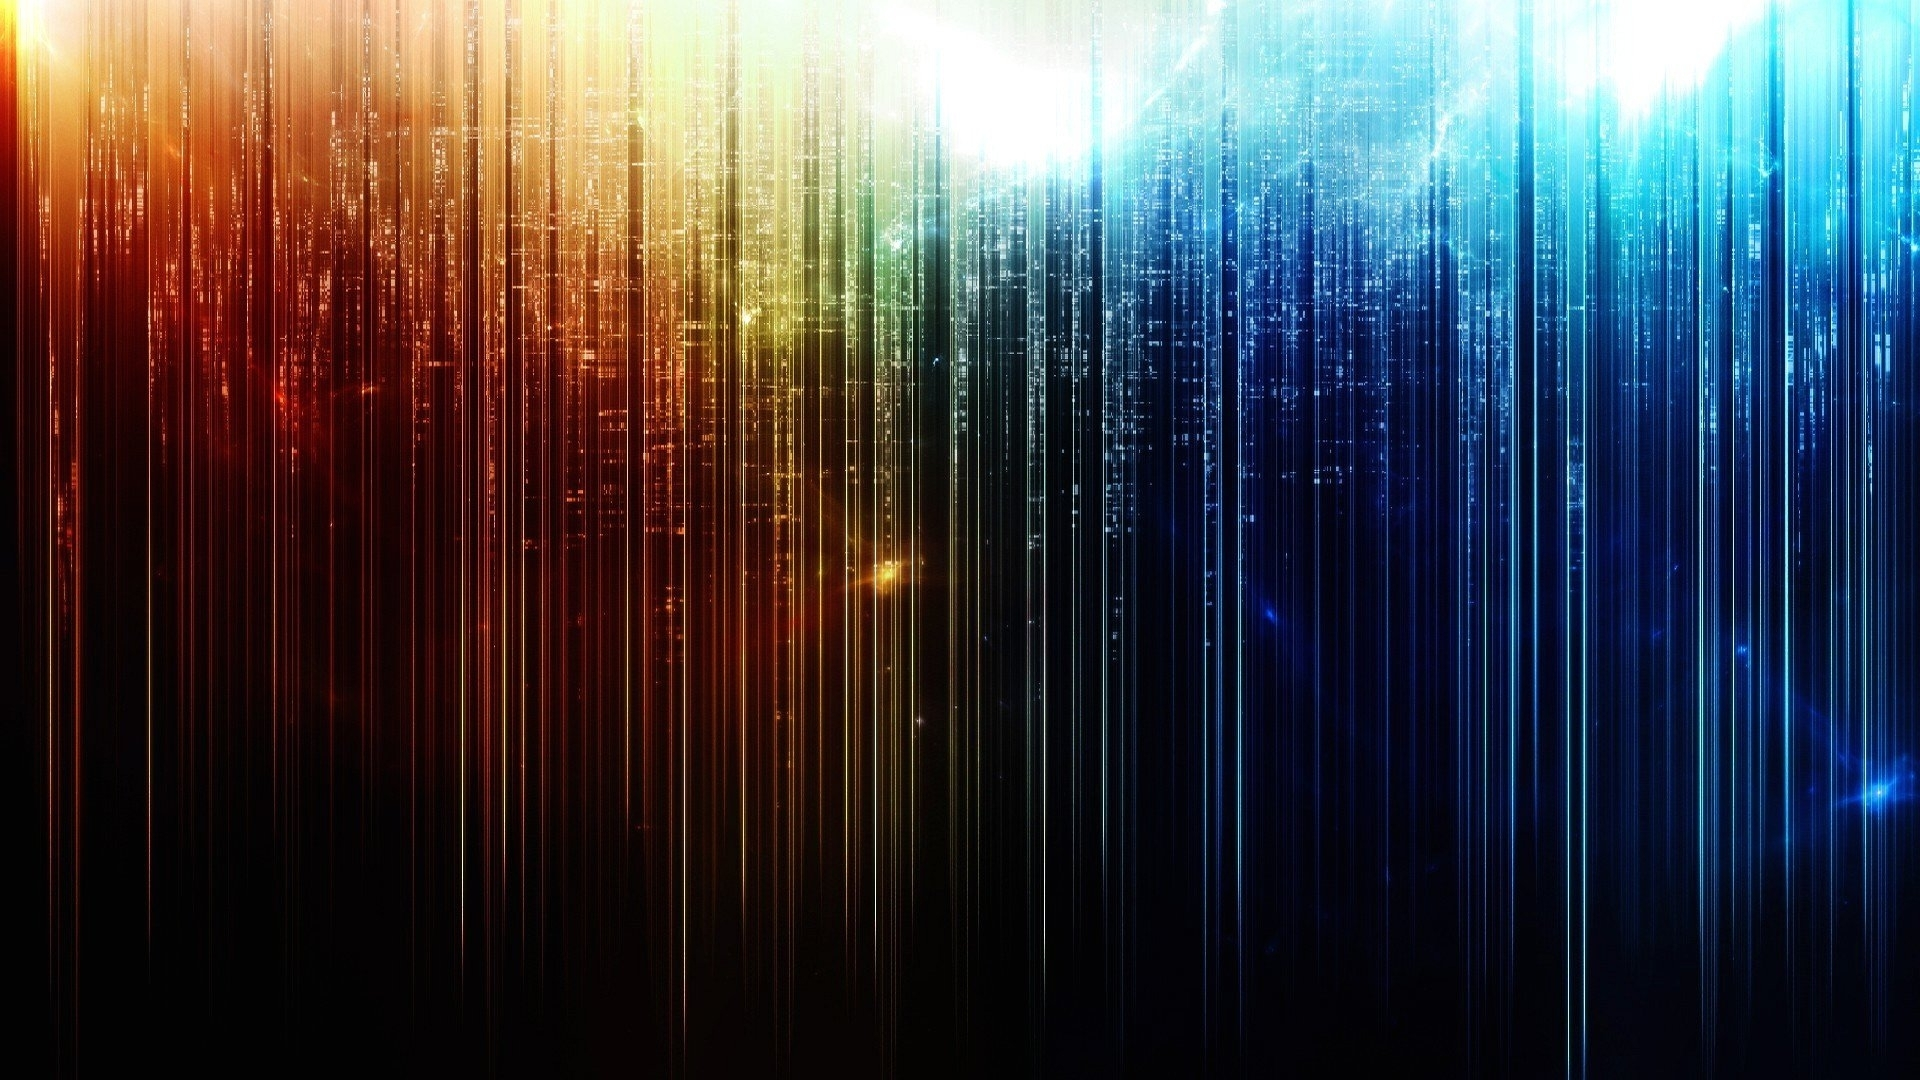 wallpaper light raining abstract 1920 x 1080 full hd - 1920 x 1080